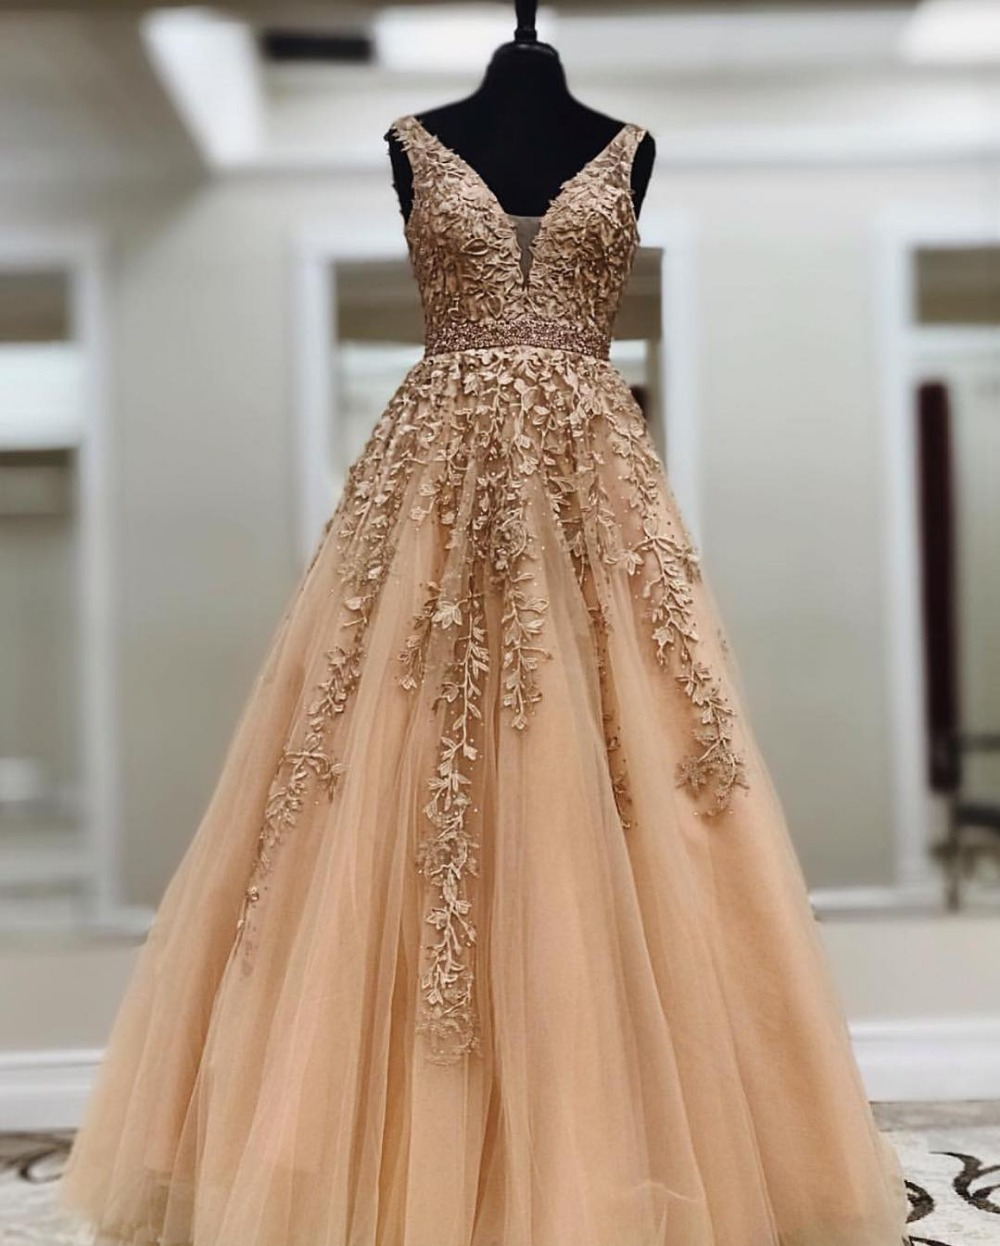 Champagne Lace Tulle A-line Long Floor Length   Prom     Dresses   V Neck Sleeveless Beaded Teens Girls Formal   Prom   Party Gowns